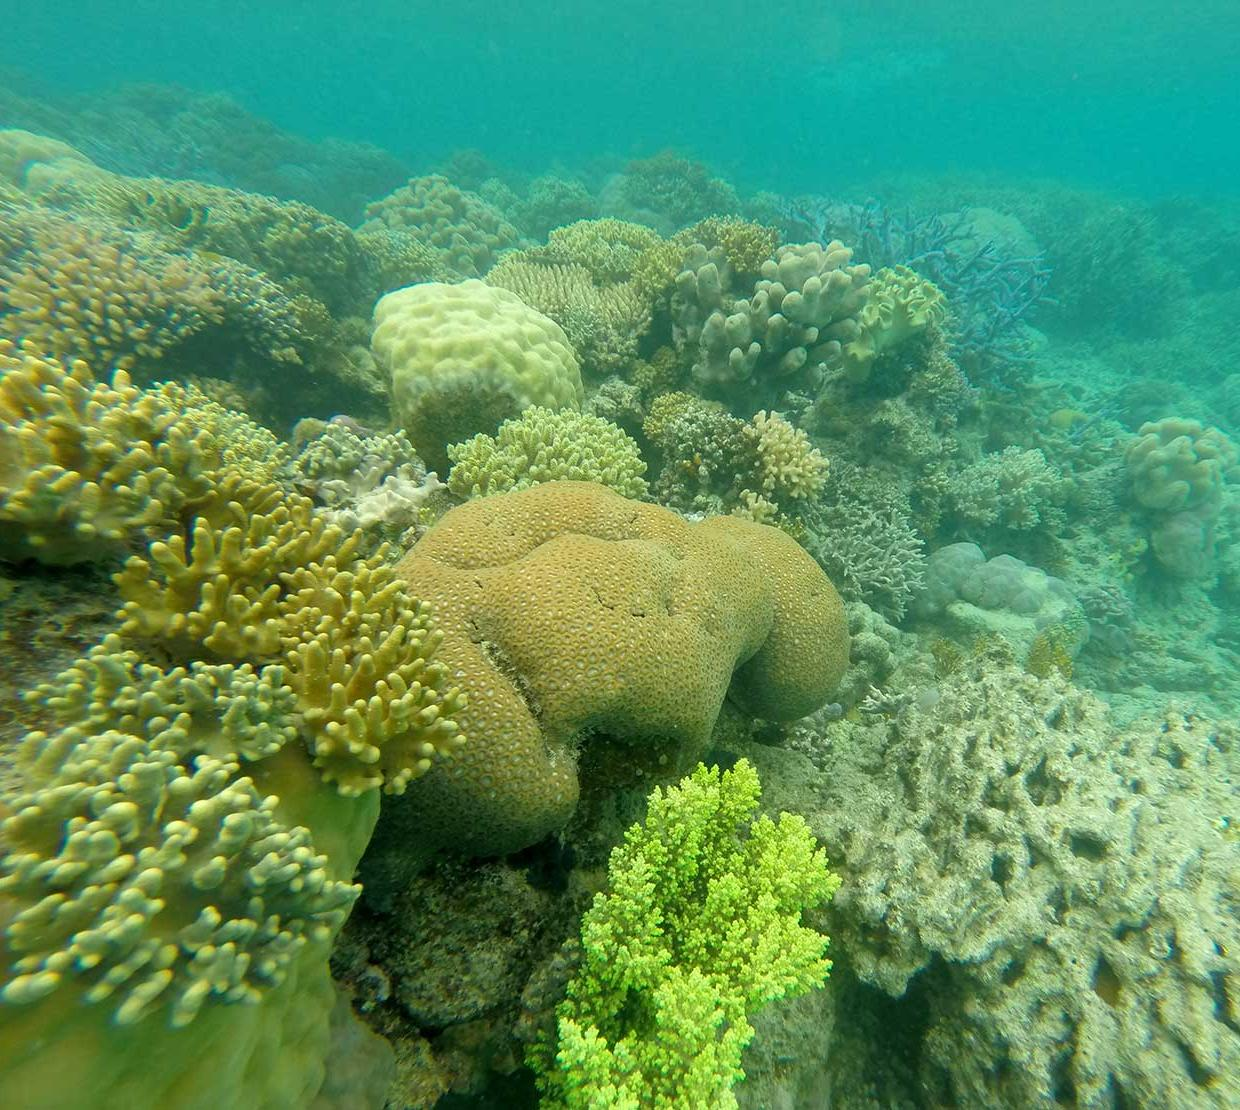 Coral in the ocean floor